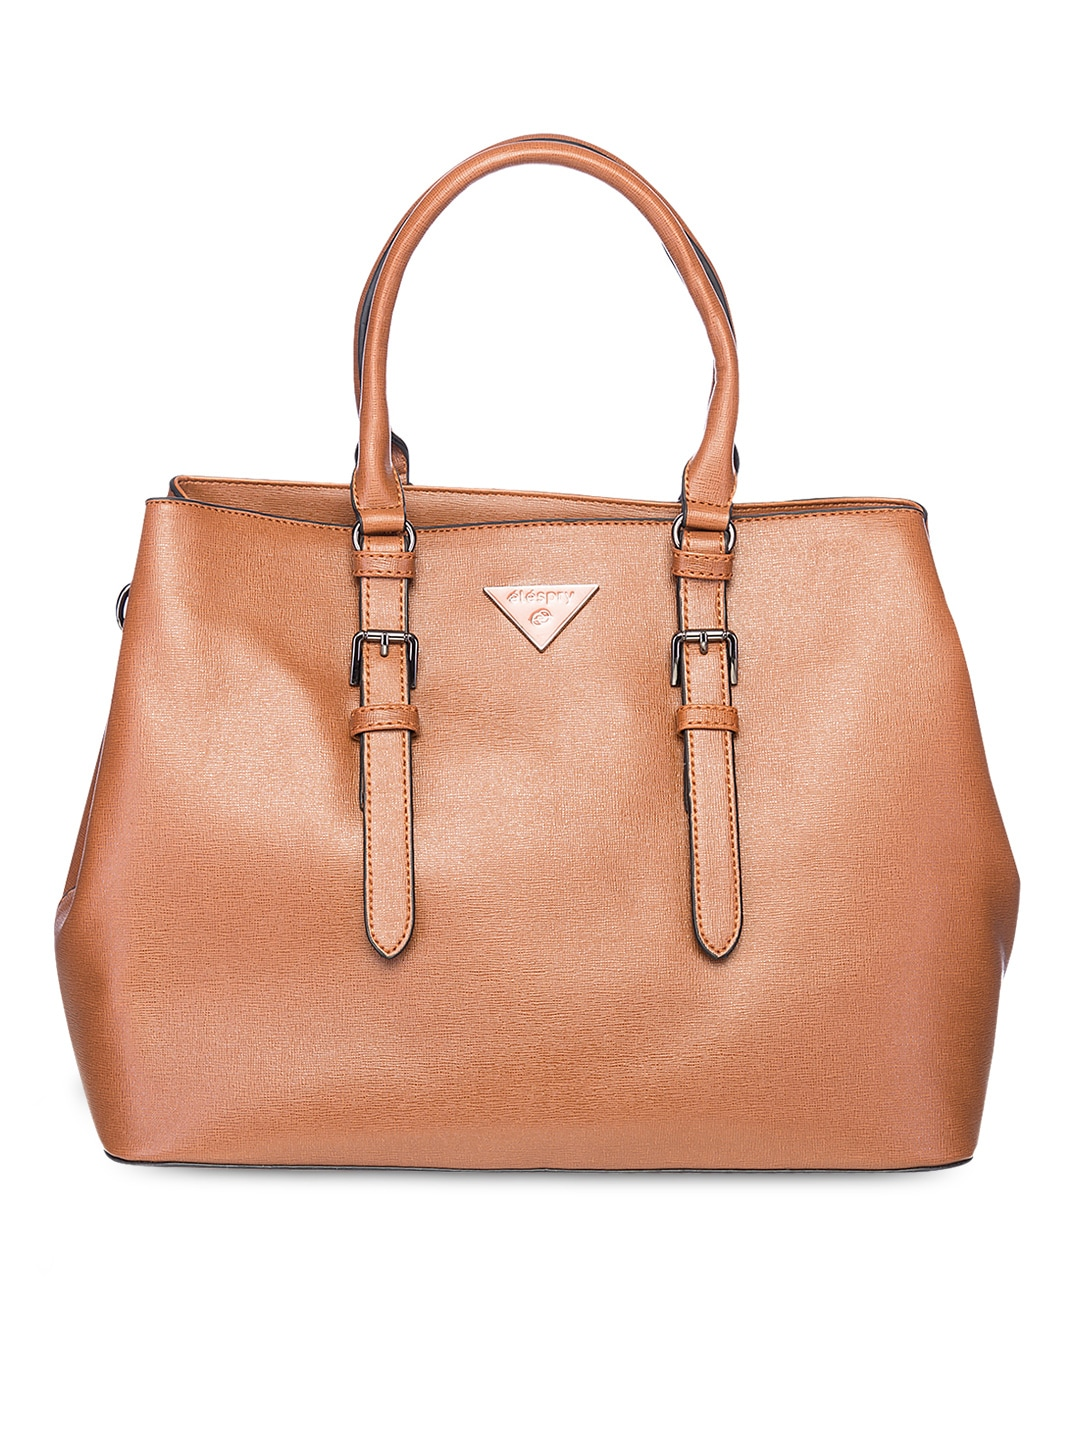 Elespry Rust Orange Handbag